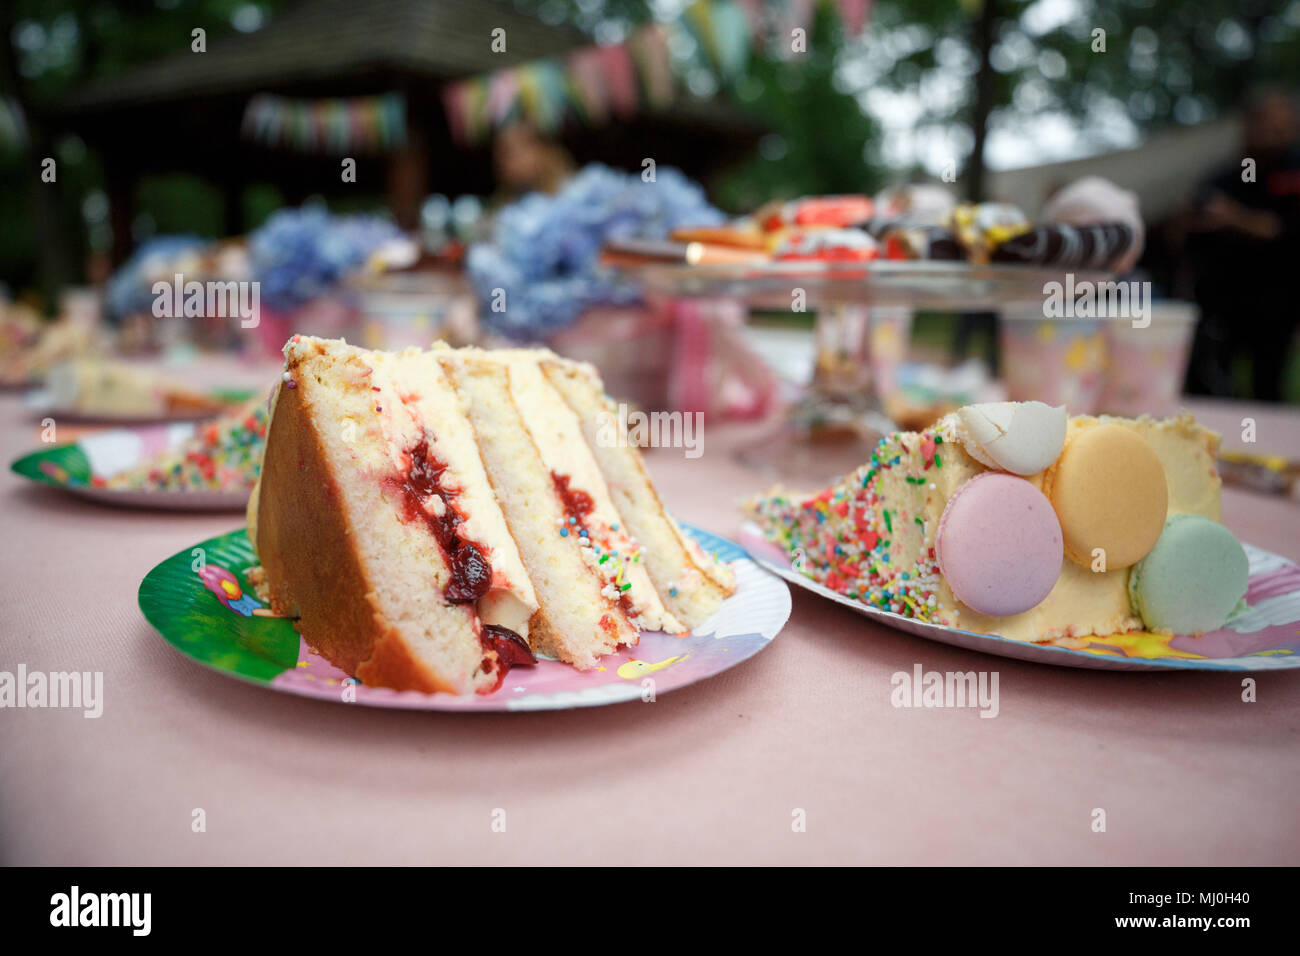 Delicious wedding reception candy bar dessert table full with cakes - Stock Image